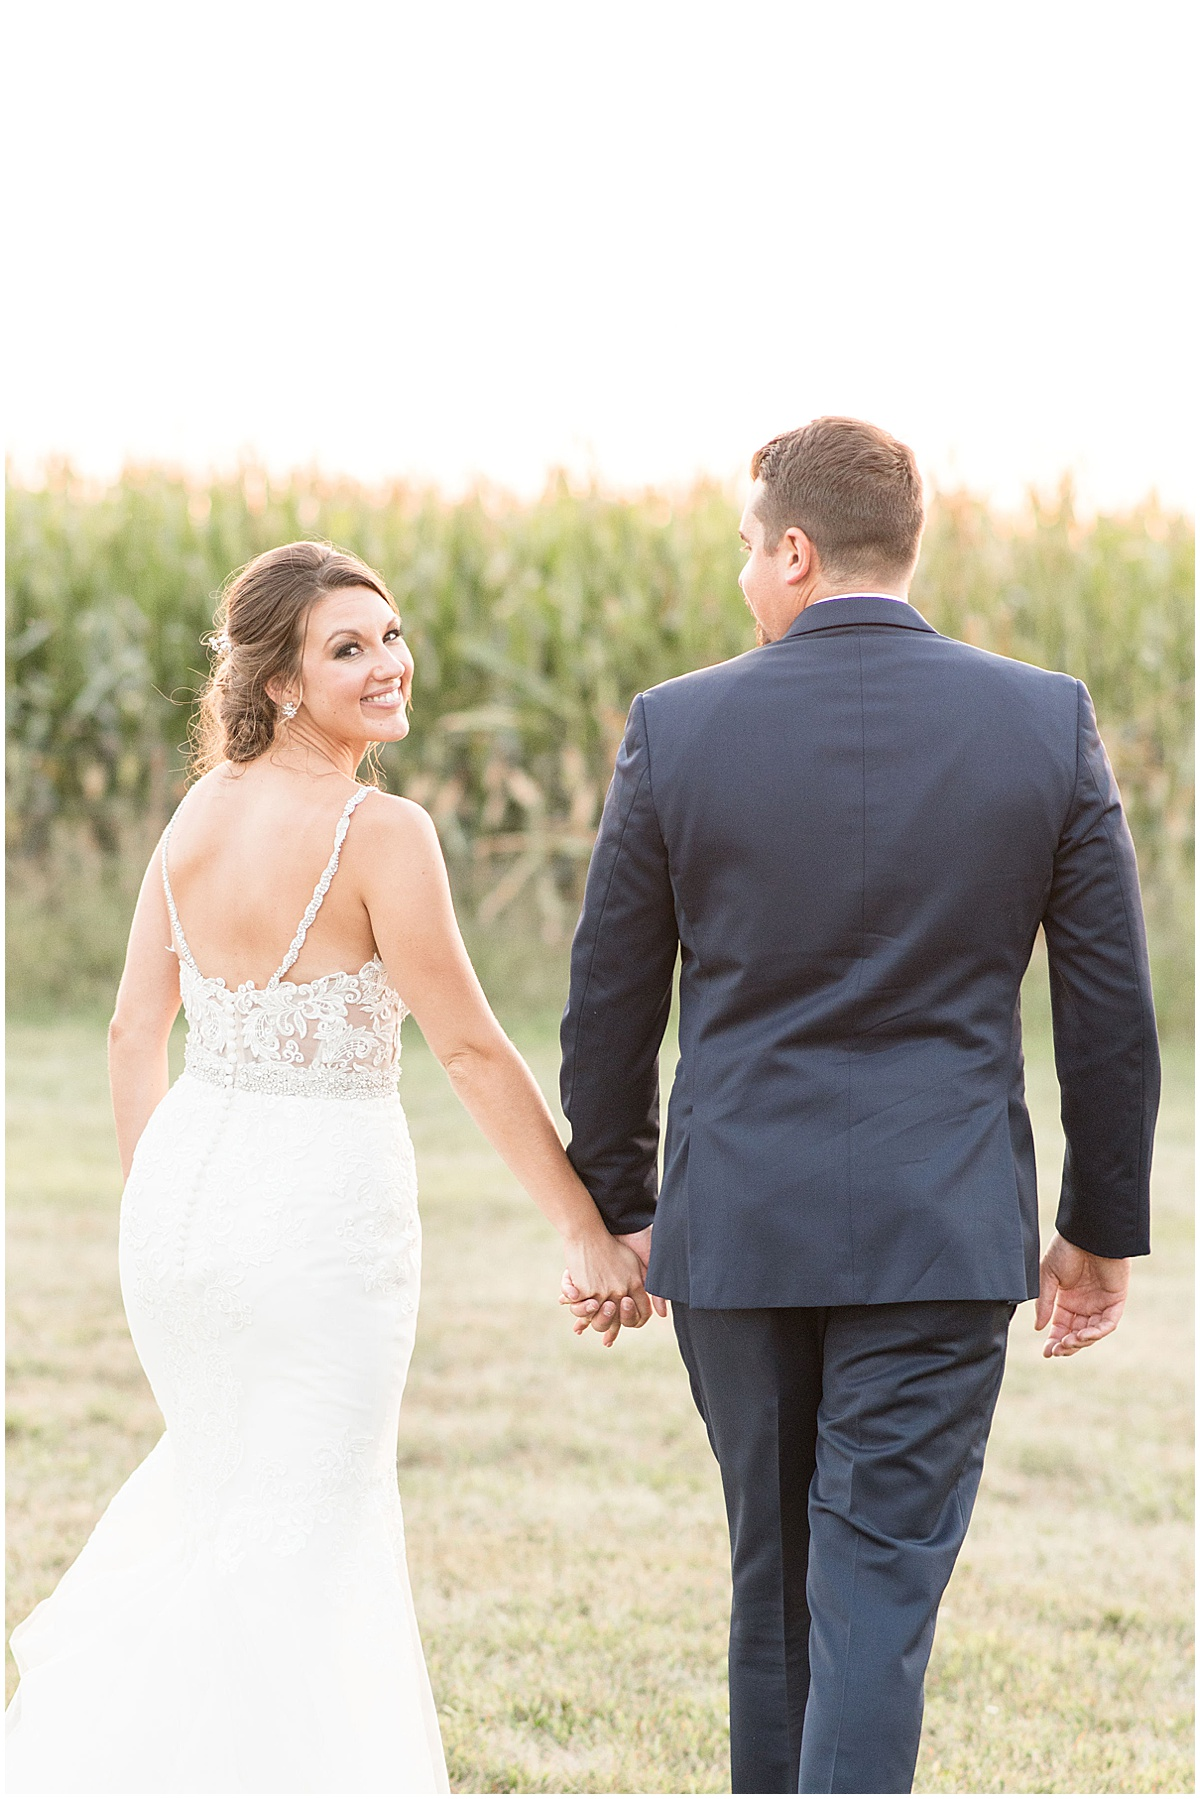 Rensseler, Indiana wedding by Victoria Rayburn Photography